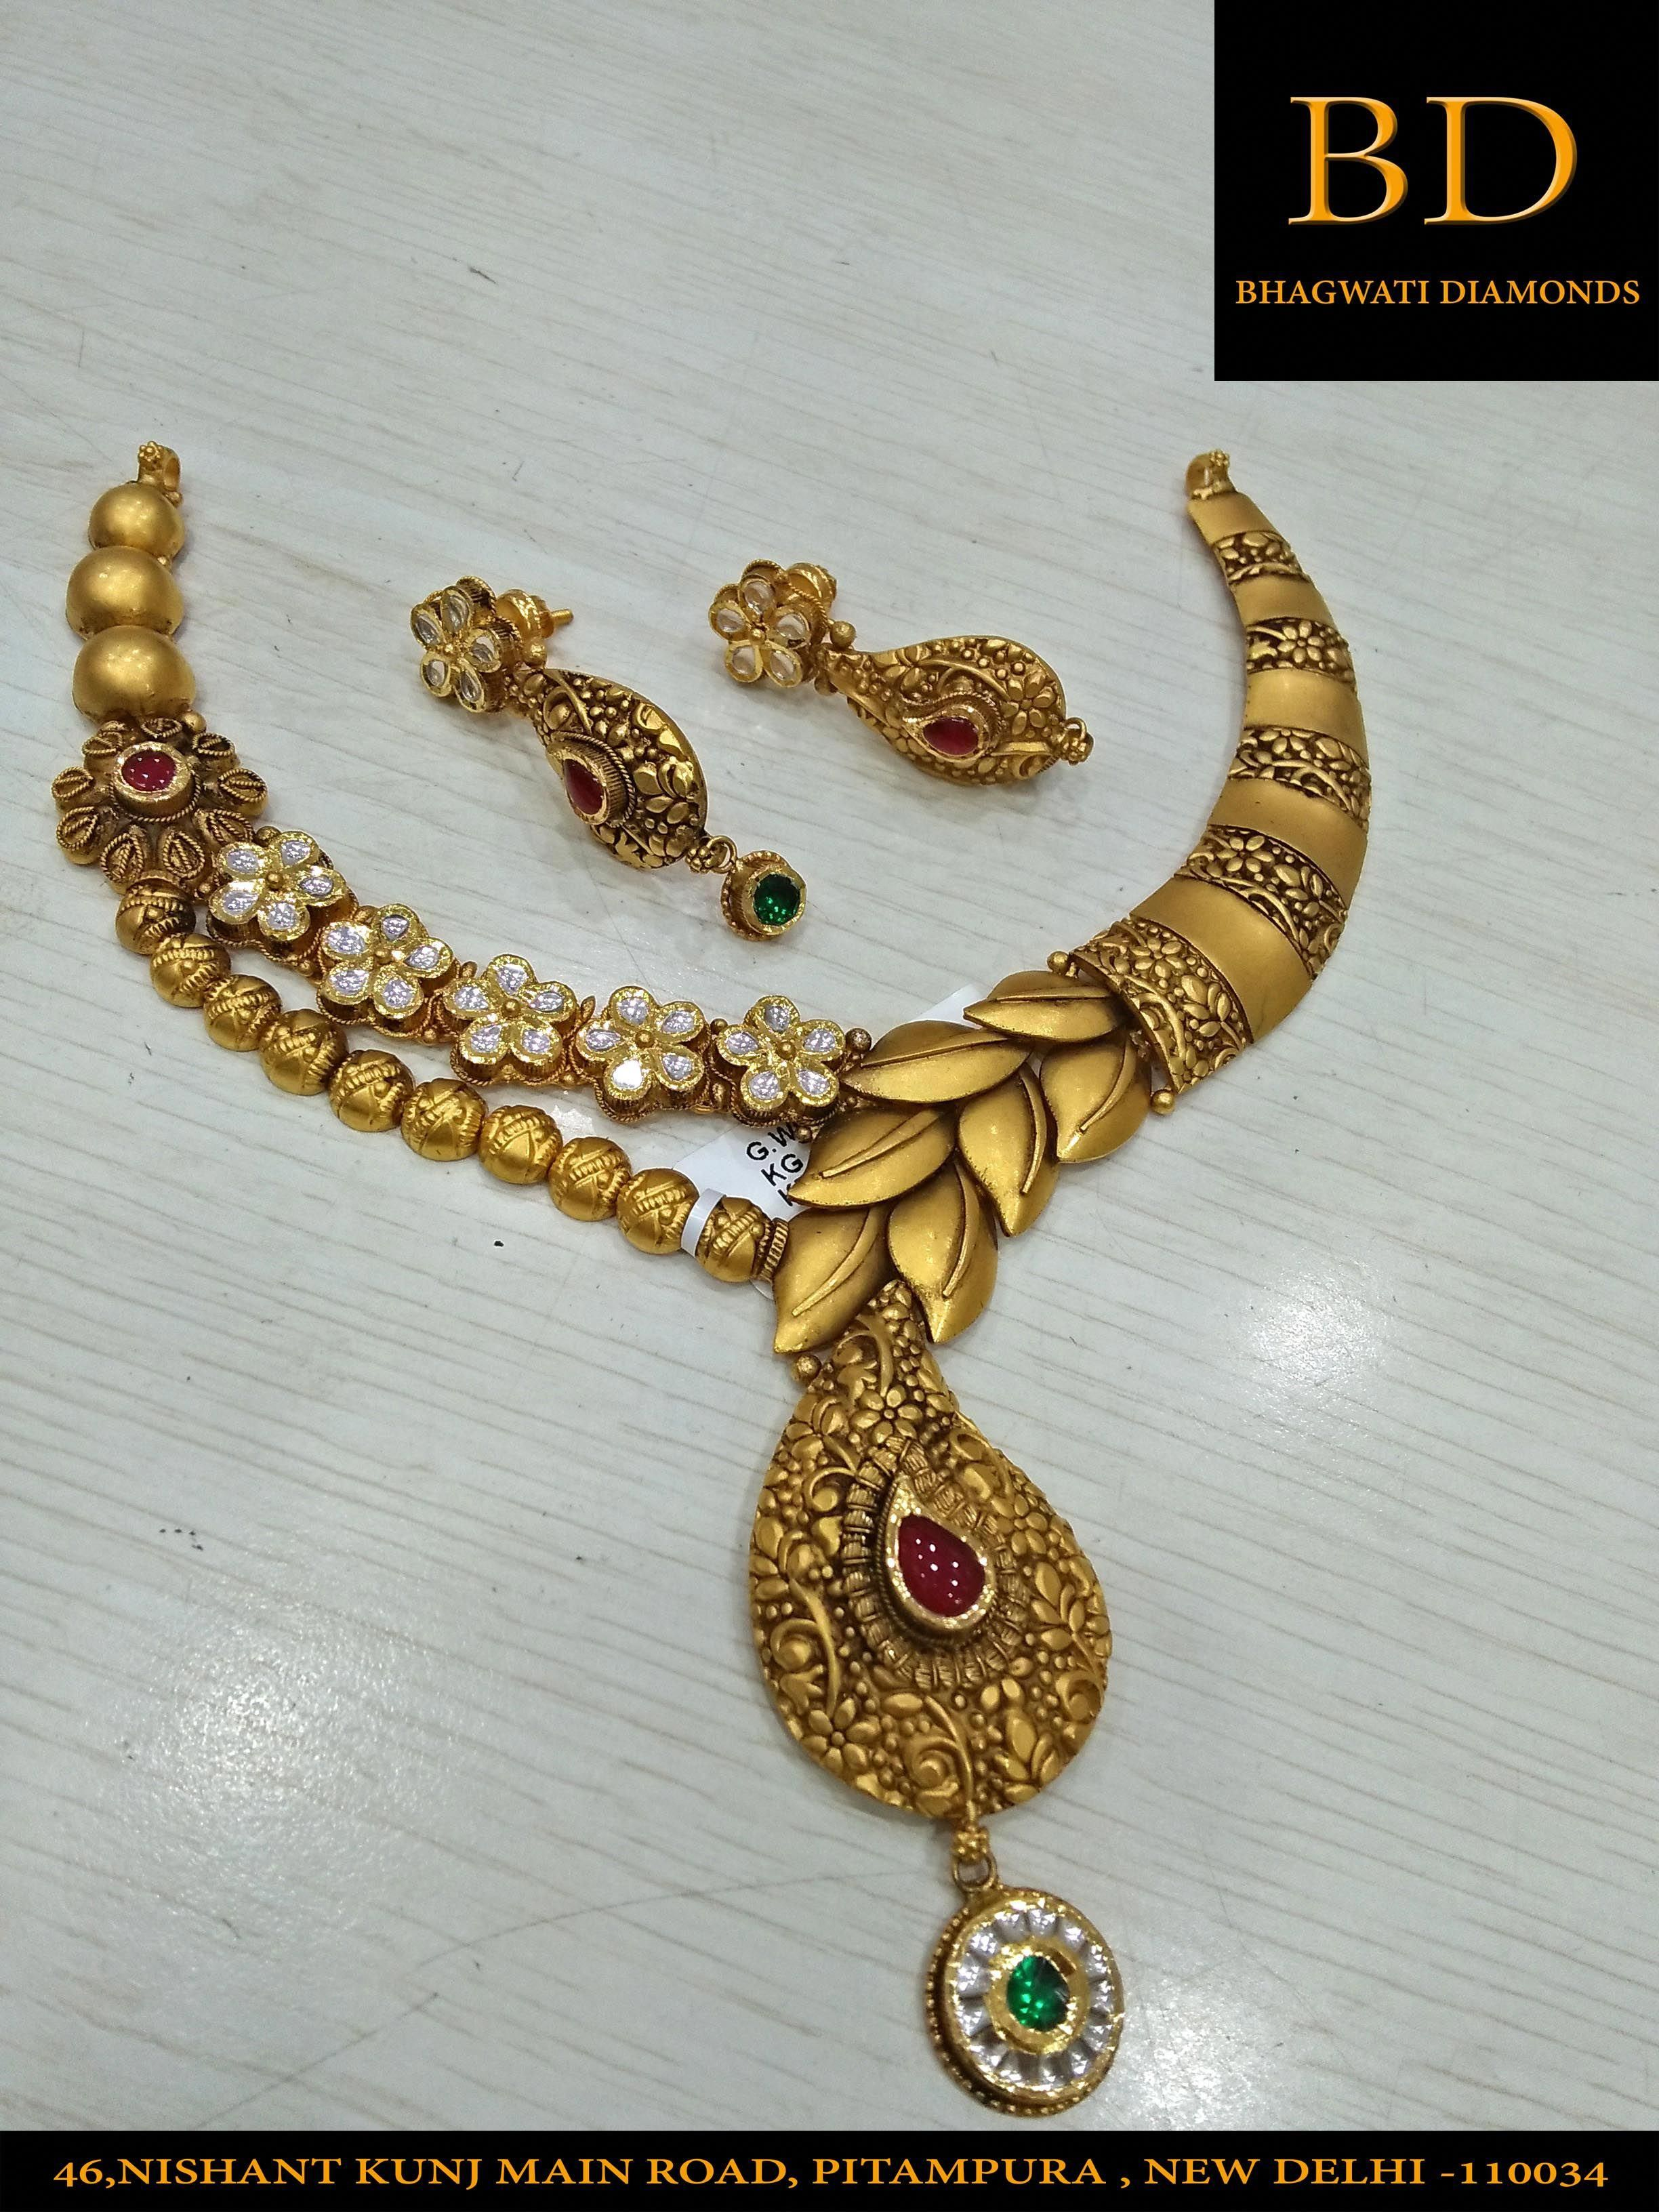 I Really Love This Fine Jewelry Necklaces Goldnecklaces Gold Fashion Necklace Antique Gold Jewelry Indian Gold Jewelry Fashion